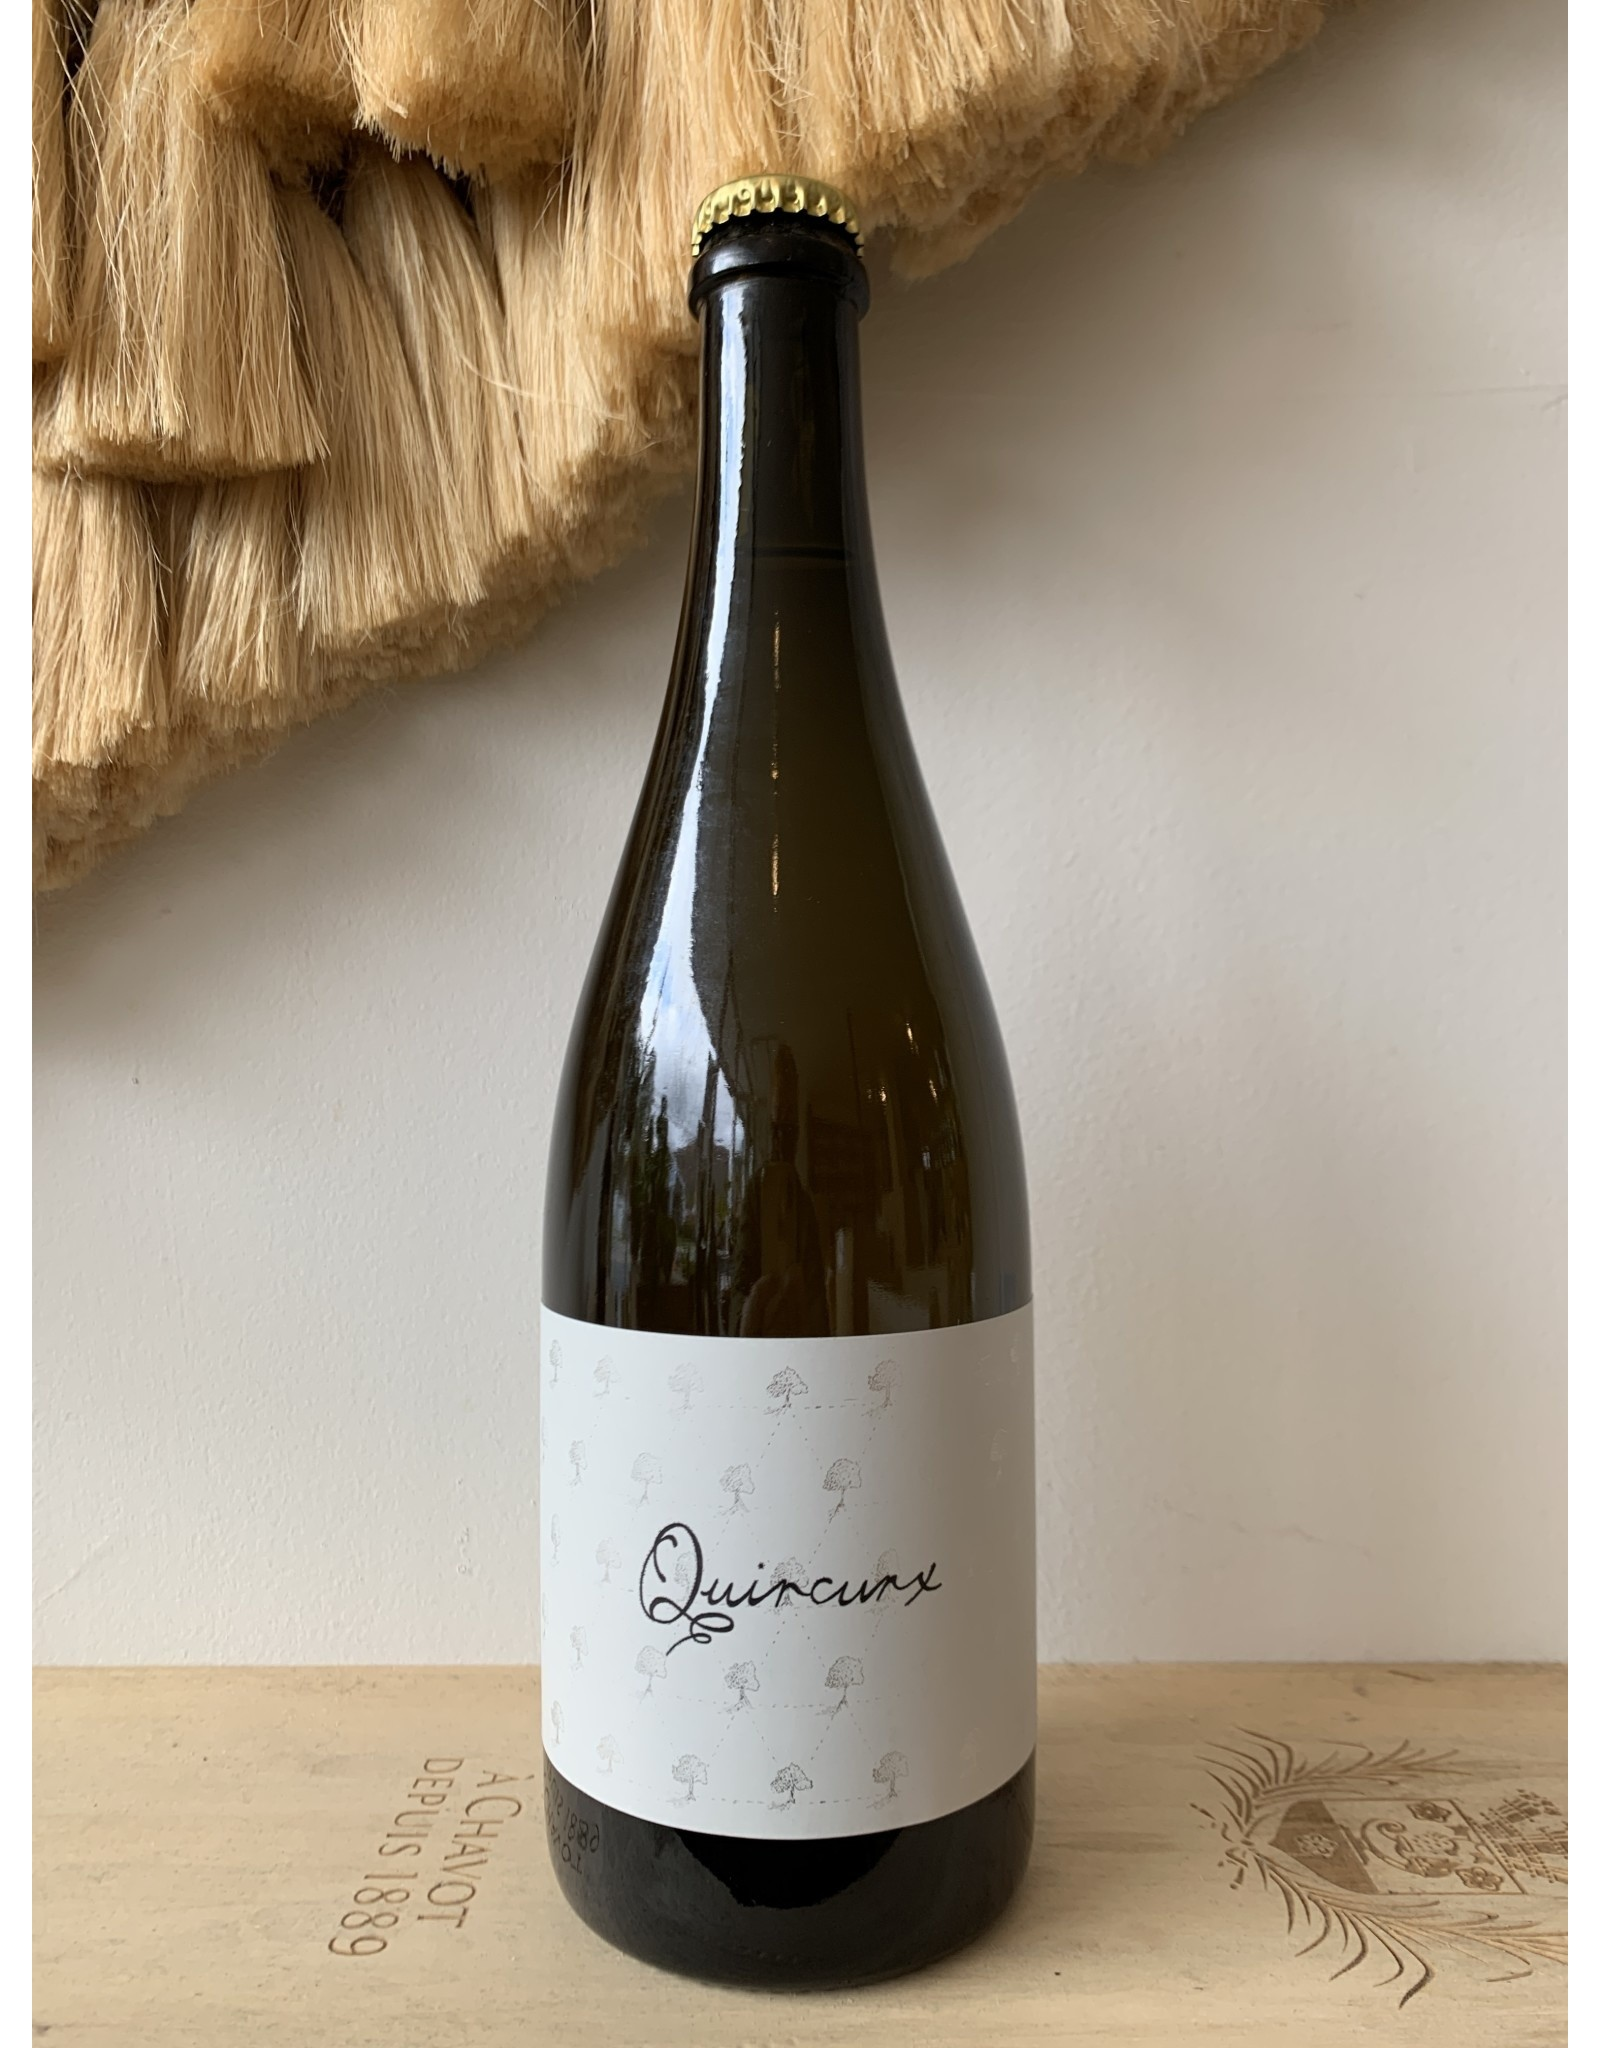 Rose Hill Farm Quincunx Cider 2019